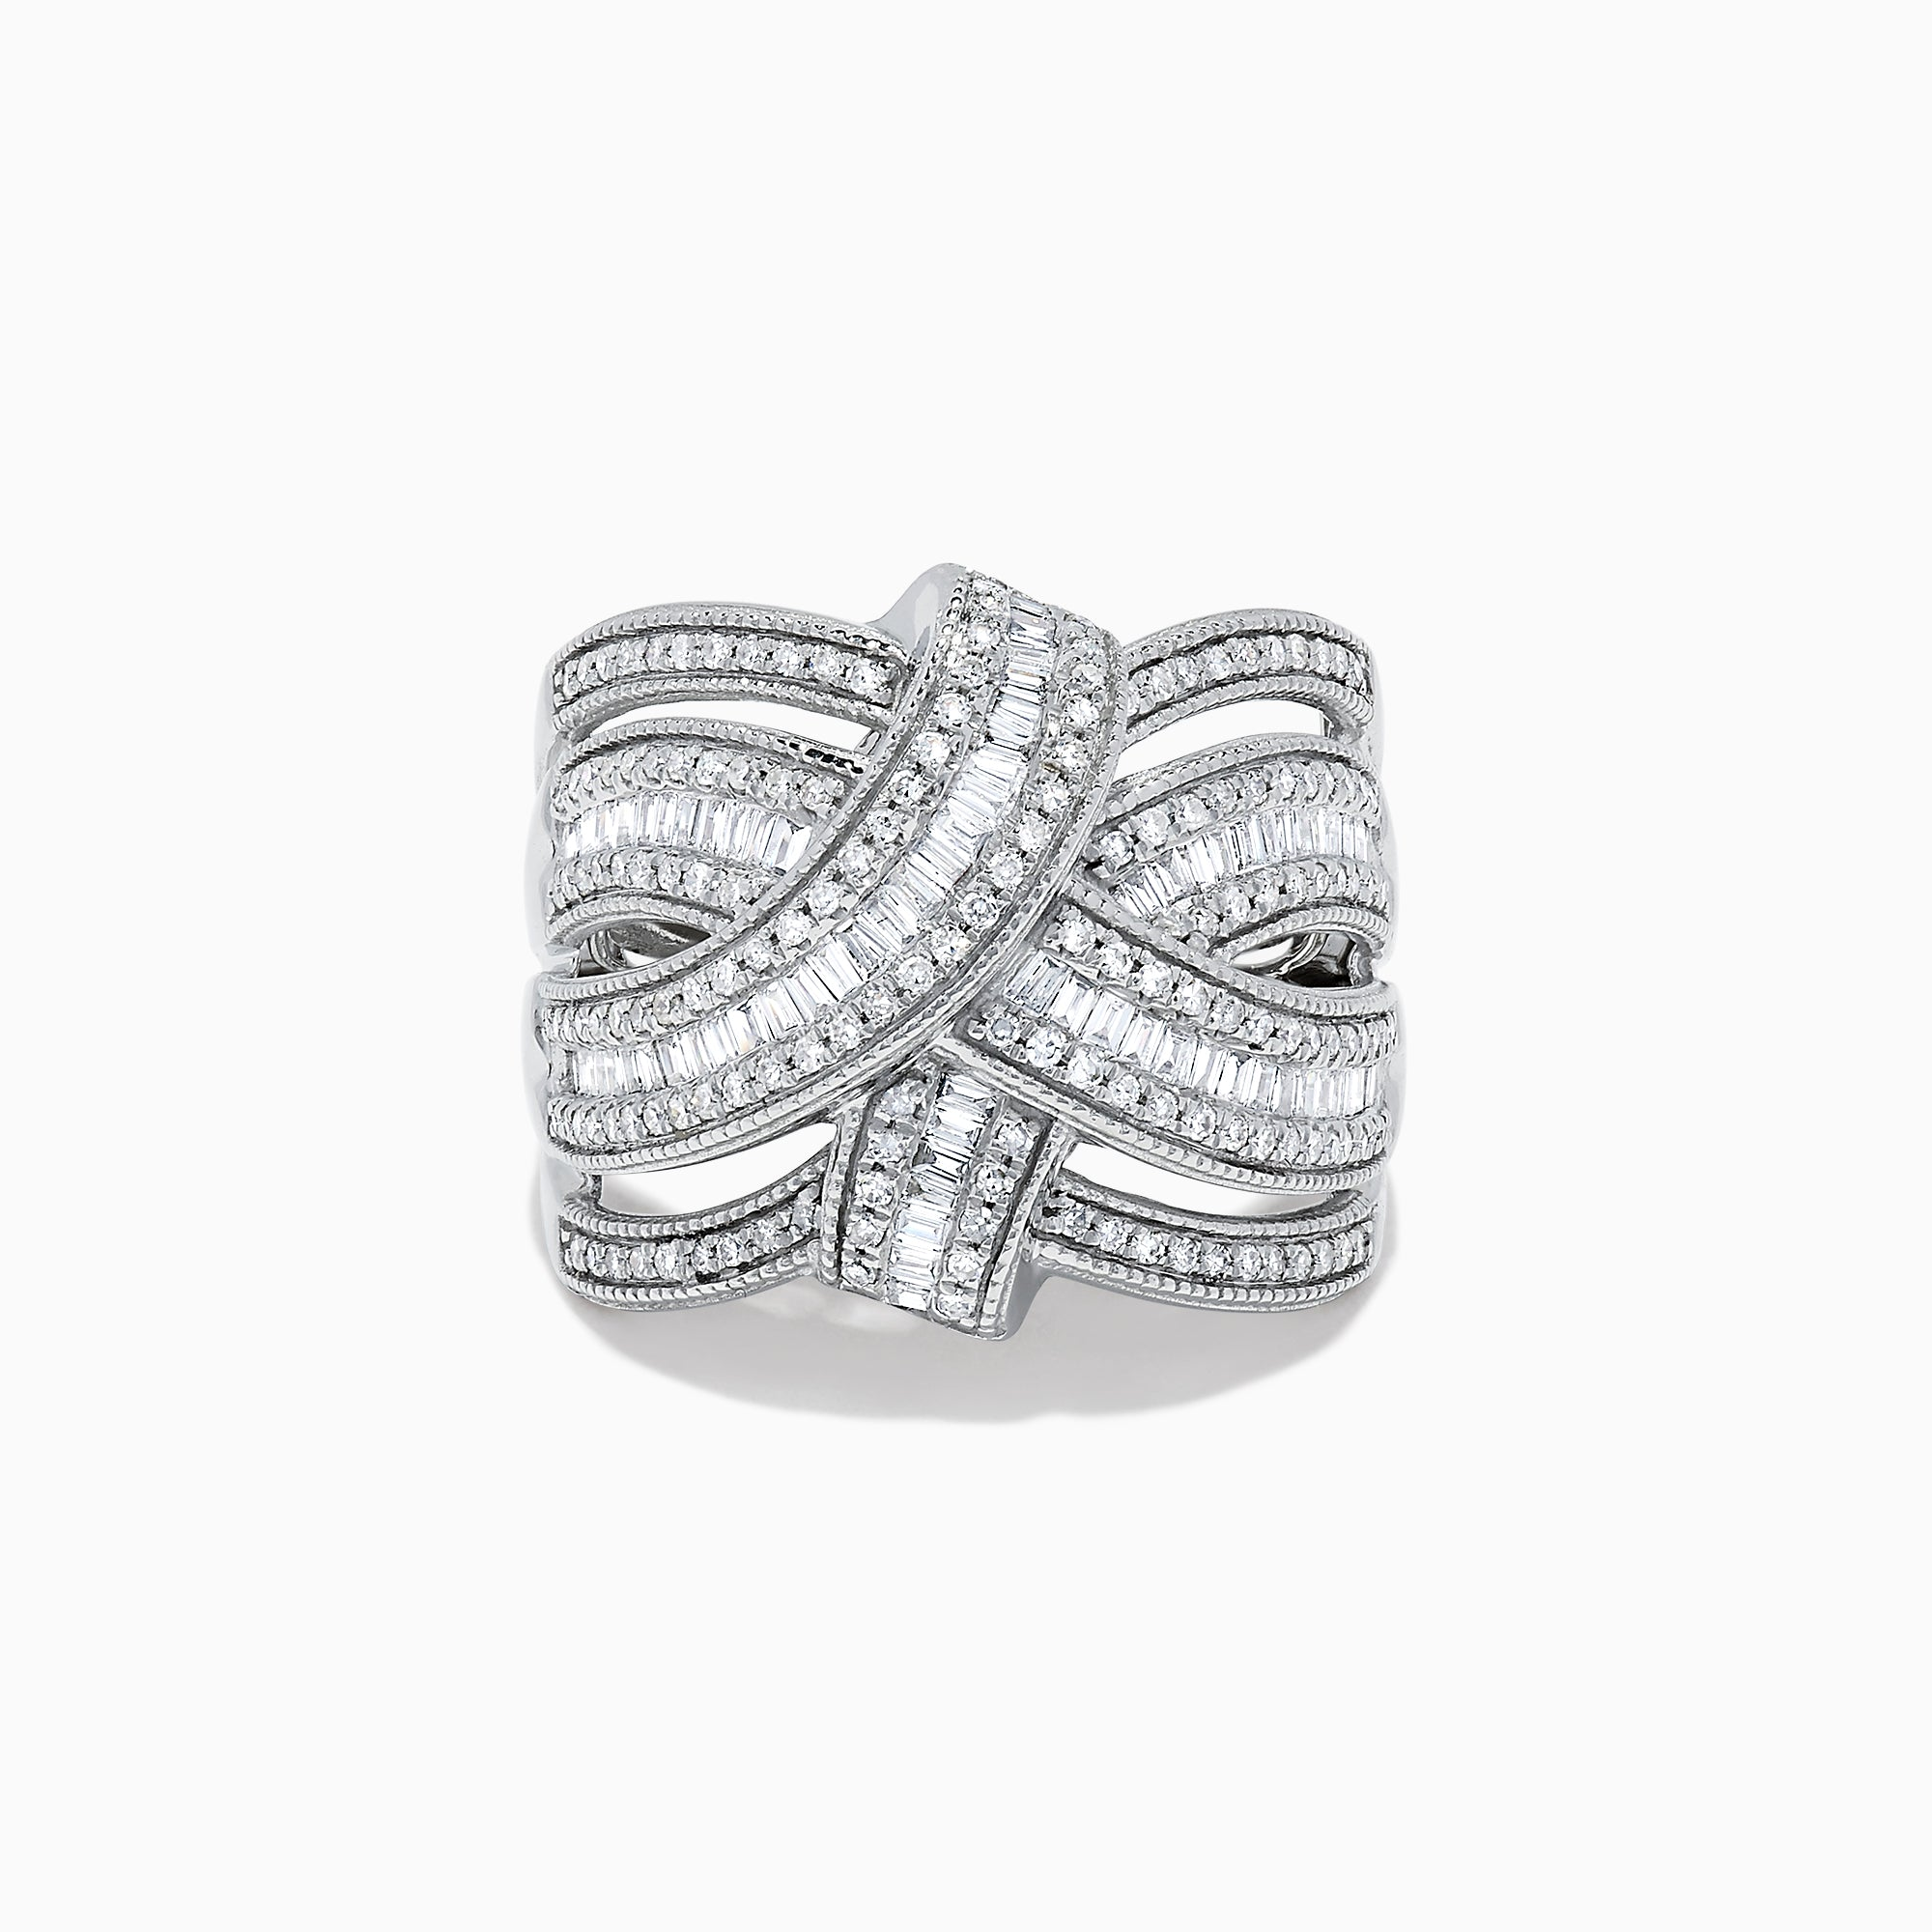 Effy Classique 14K White Gold Diamond Ring, 0.93 TCW